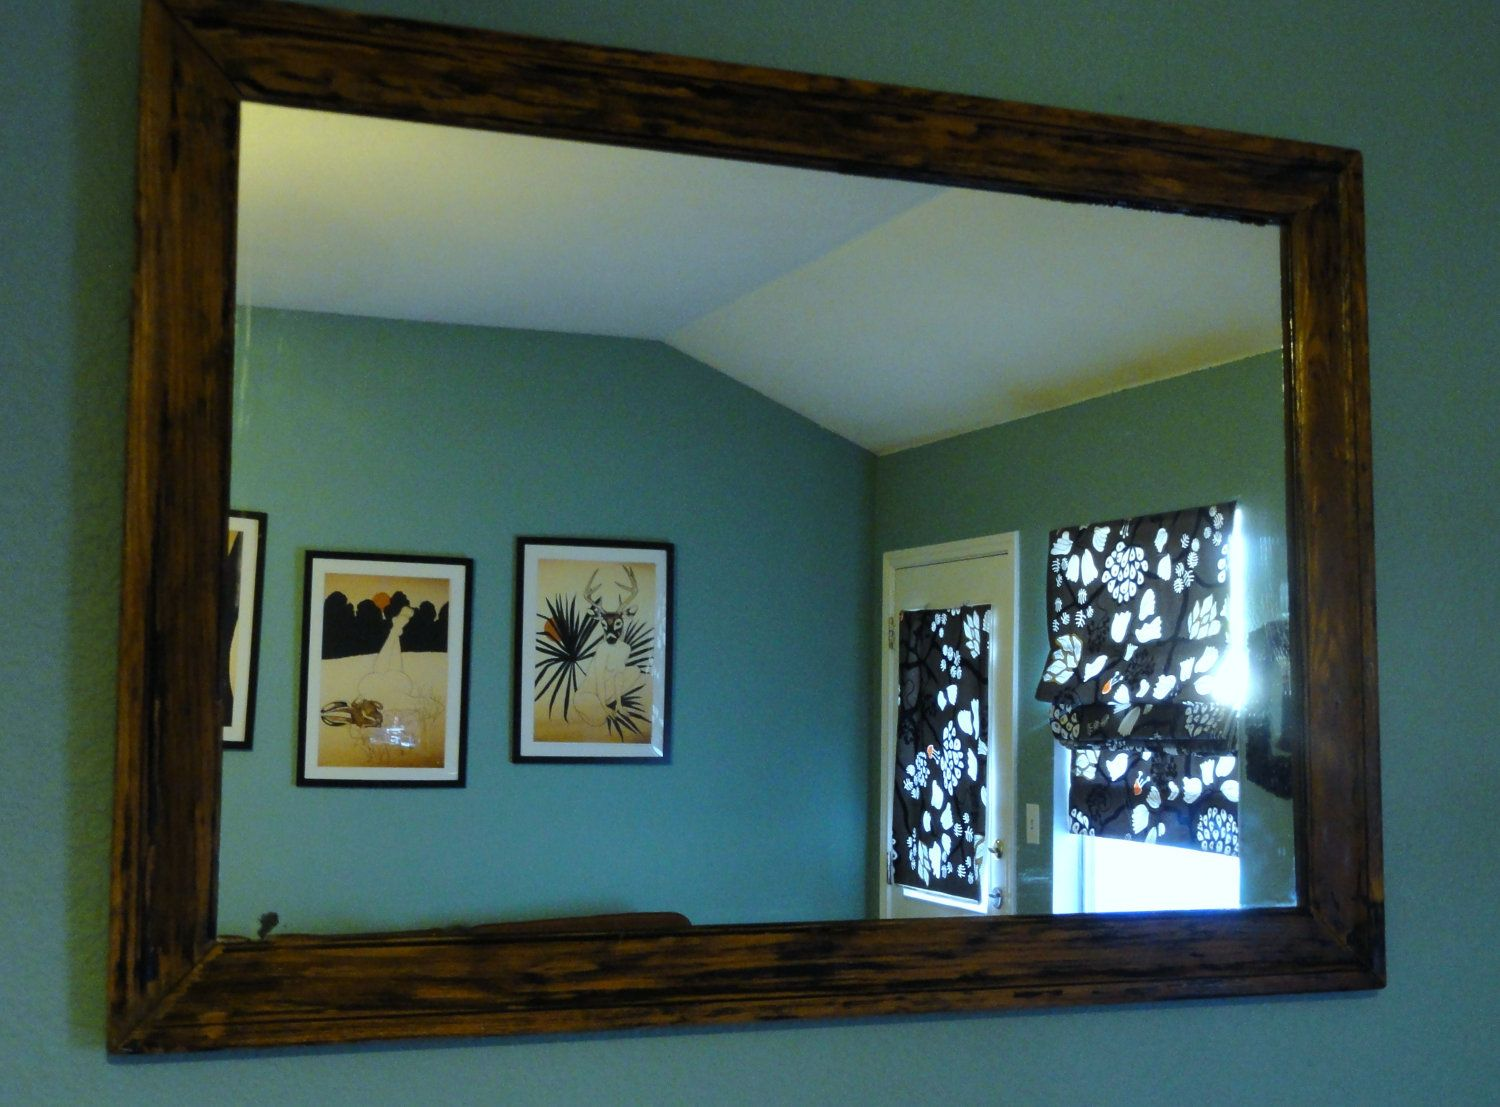 Large Framed Rustic Wood Wall Mirror Online Glass By Shoesrack I Am